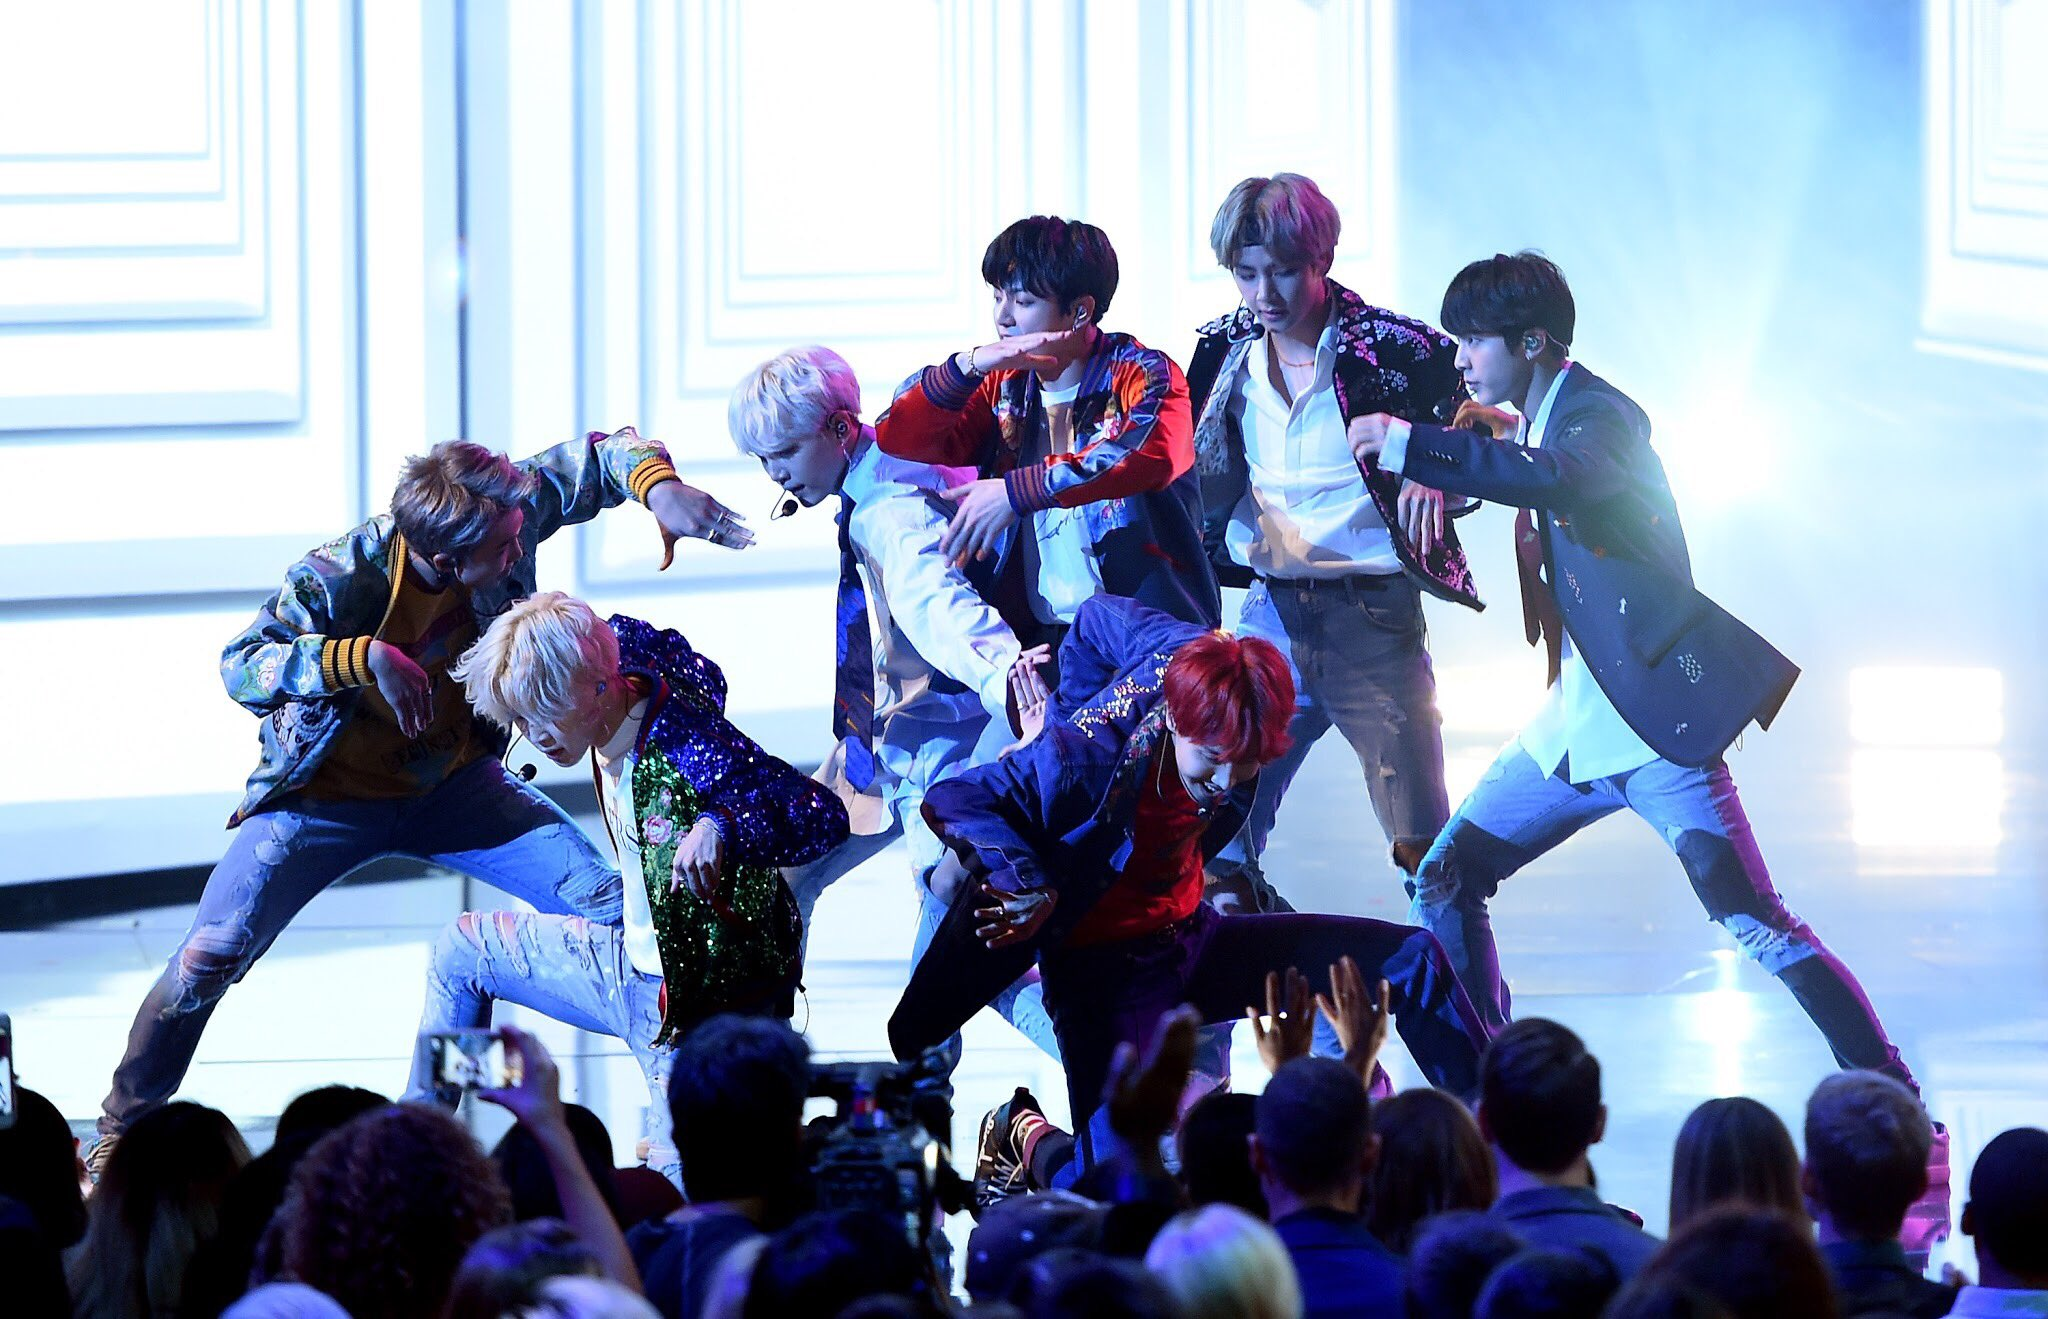 Watch @BTS_twt make their official U.S. television debut at the American Music Awards. https://t.co/VsuW1sze5H https://t.co/KGYLfIVM5s